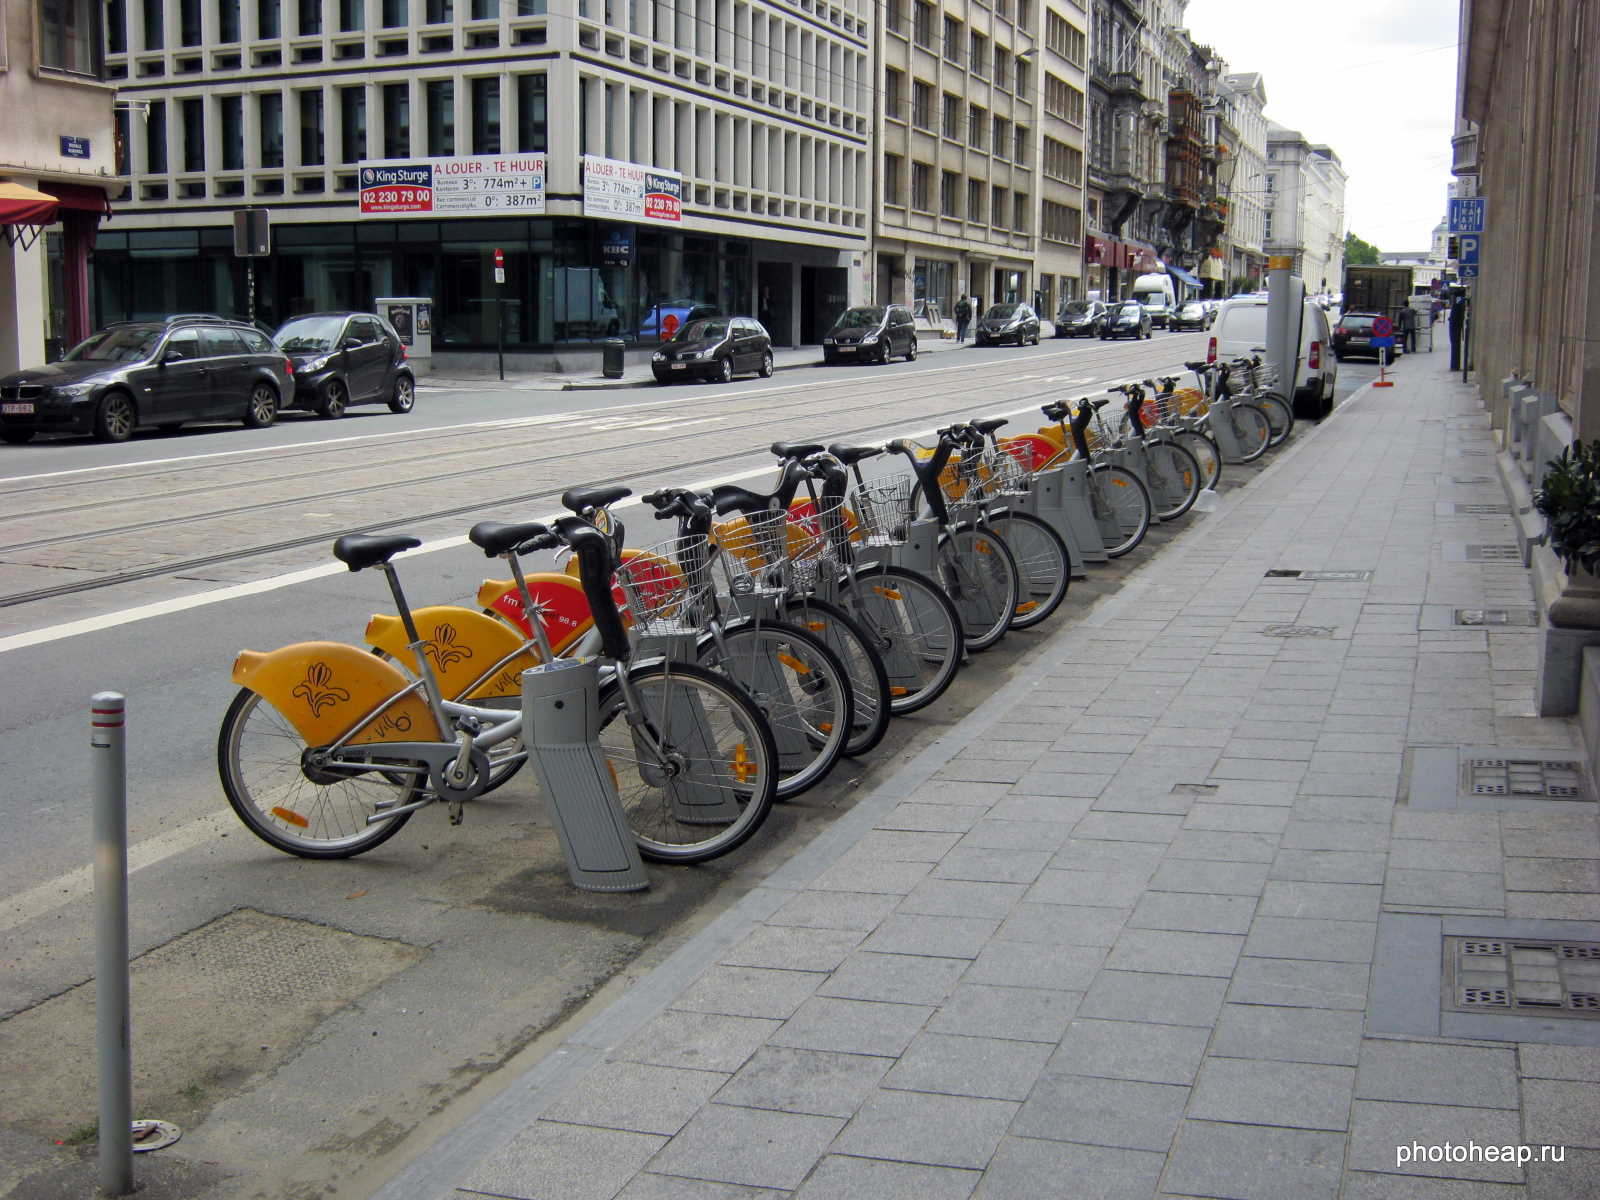 Brussels - bike parking